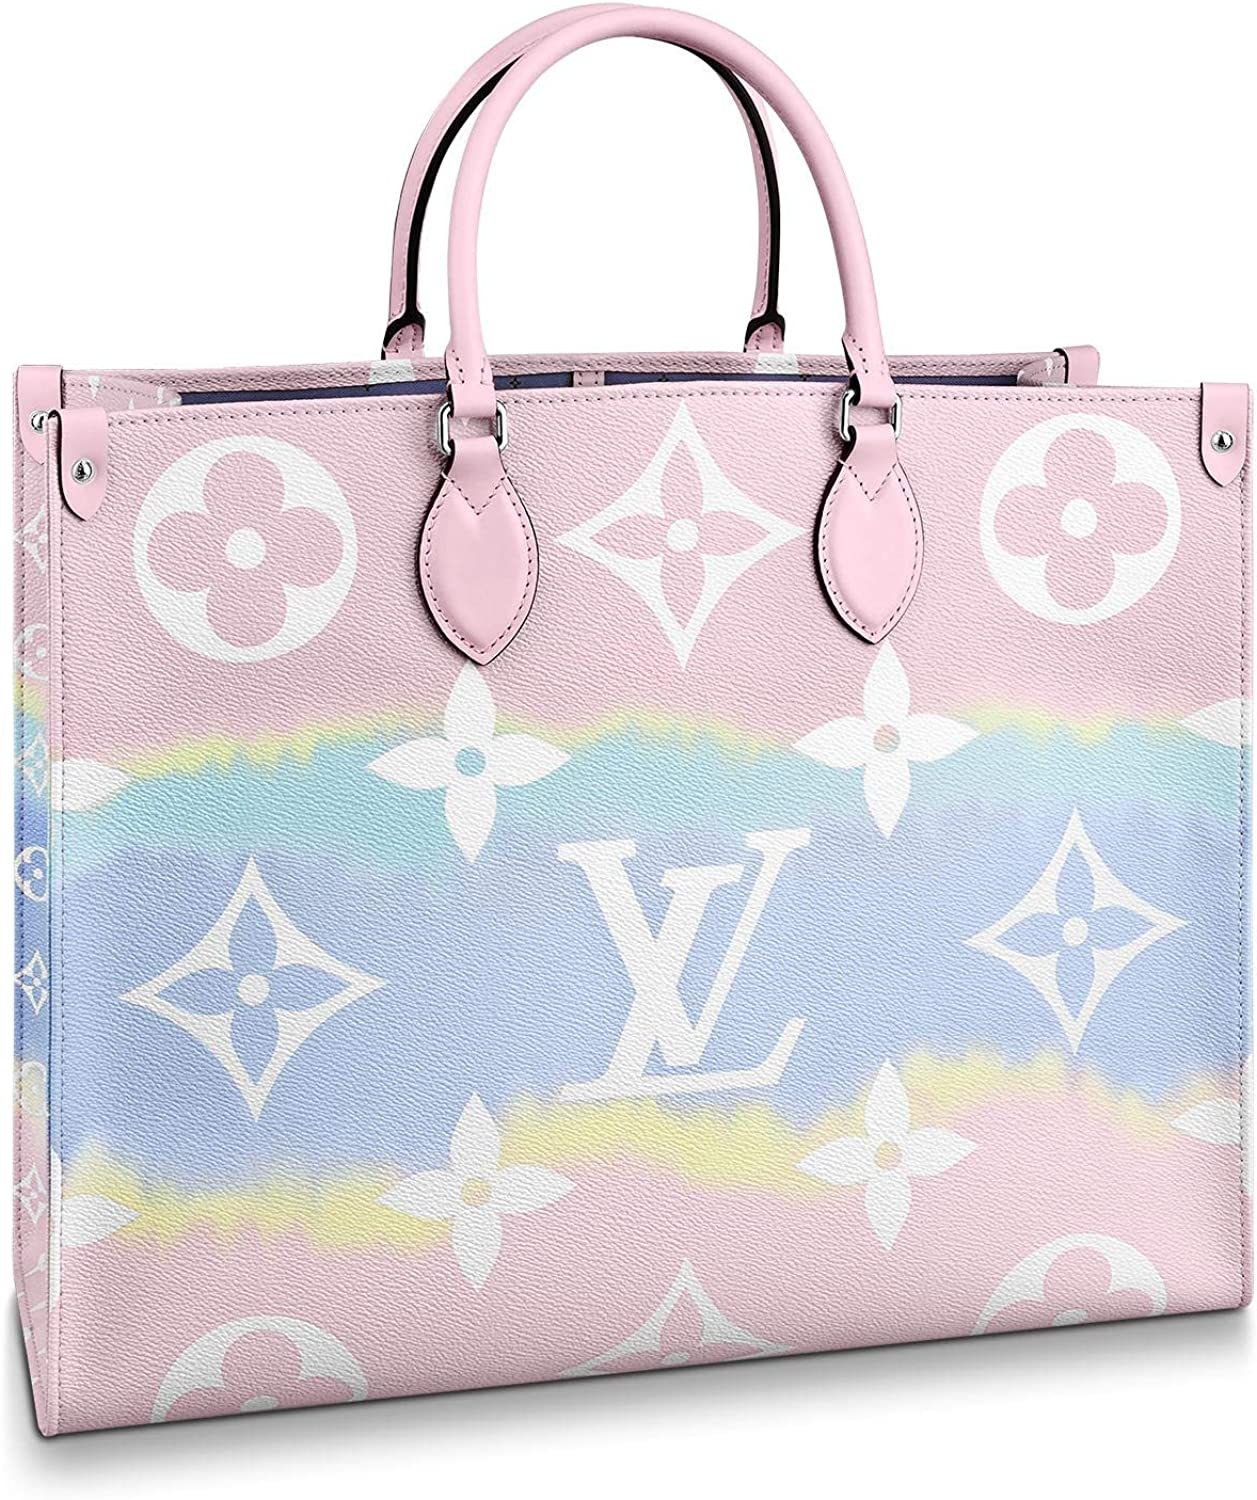 Amazon Com Louis Vuitton Lv Escale Onthego Gm Pastel Tote Bags Limited Edition Purse Handbags Shoes